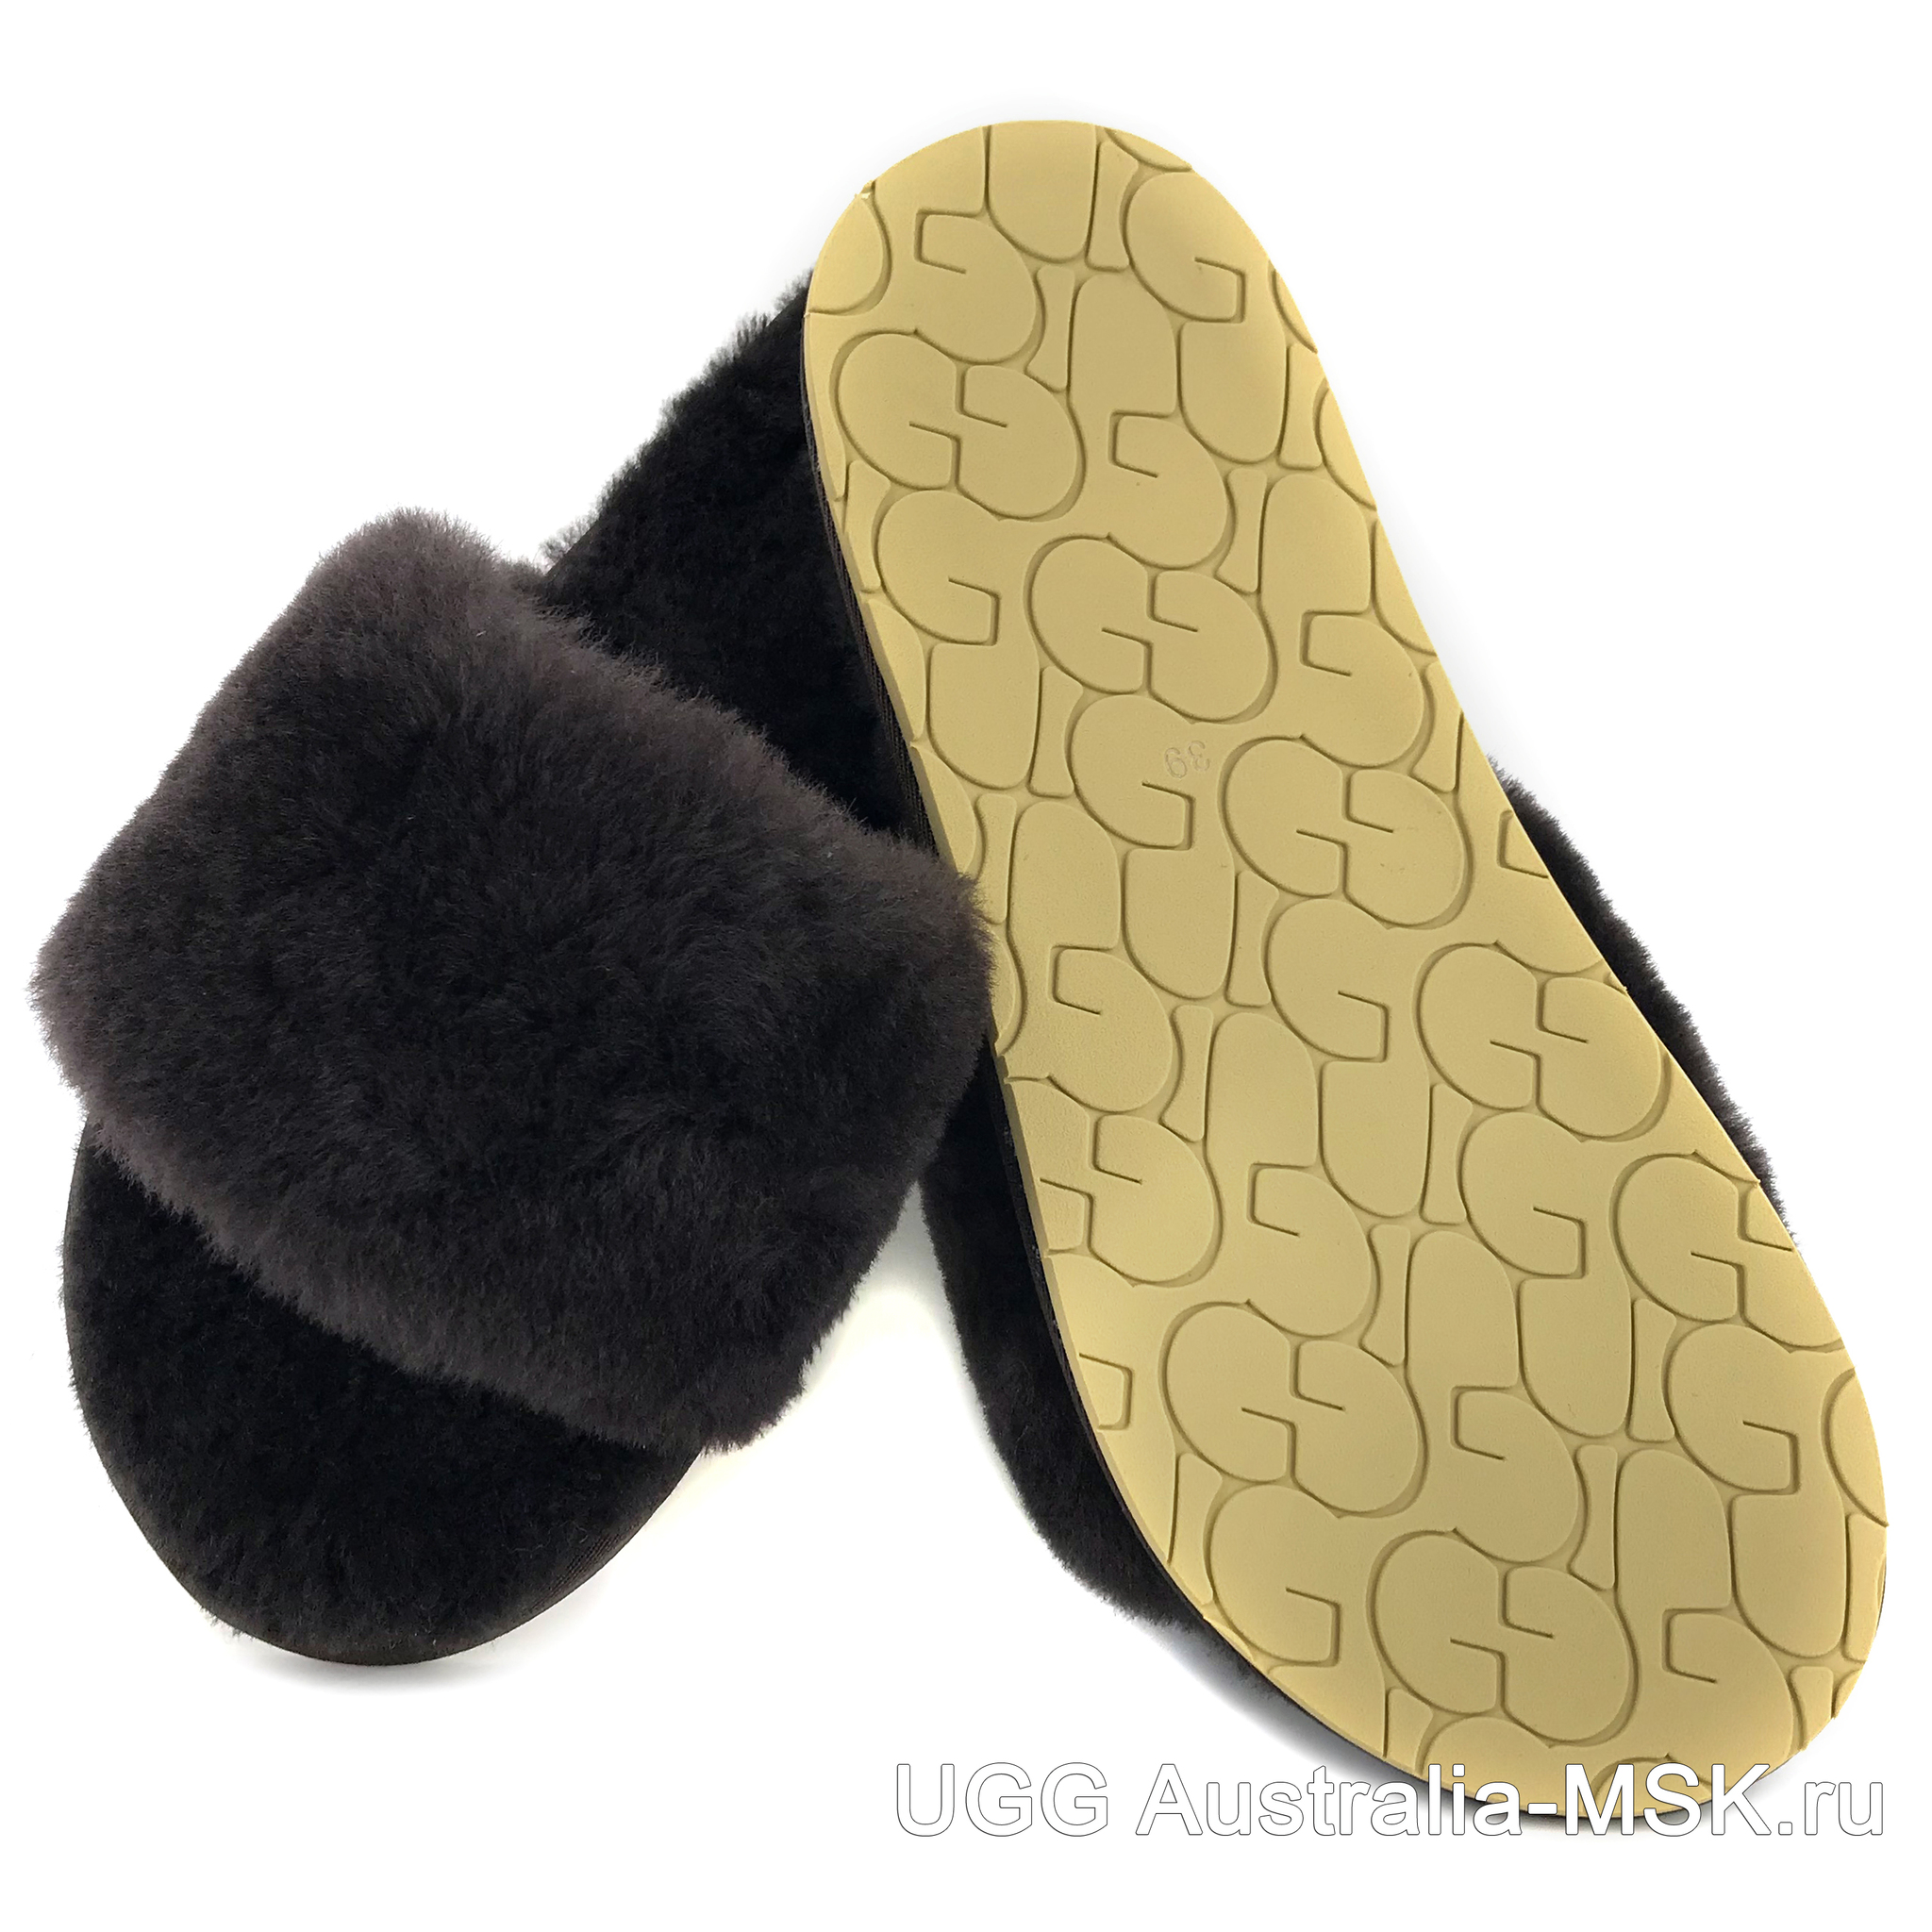 UGG Slipper Black